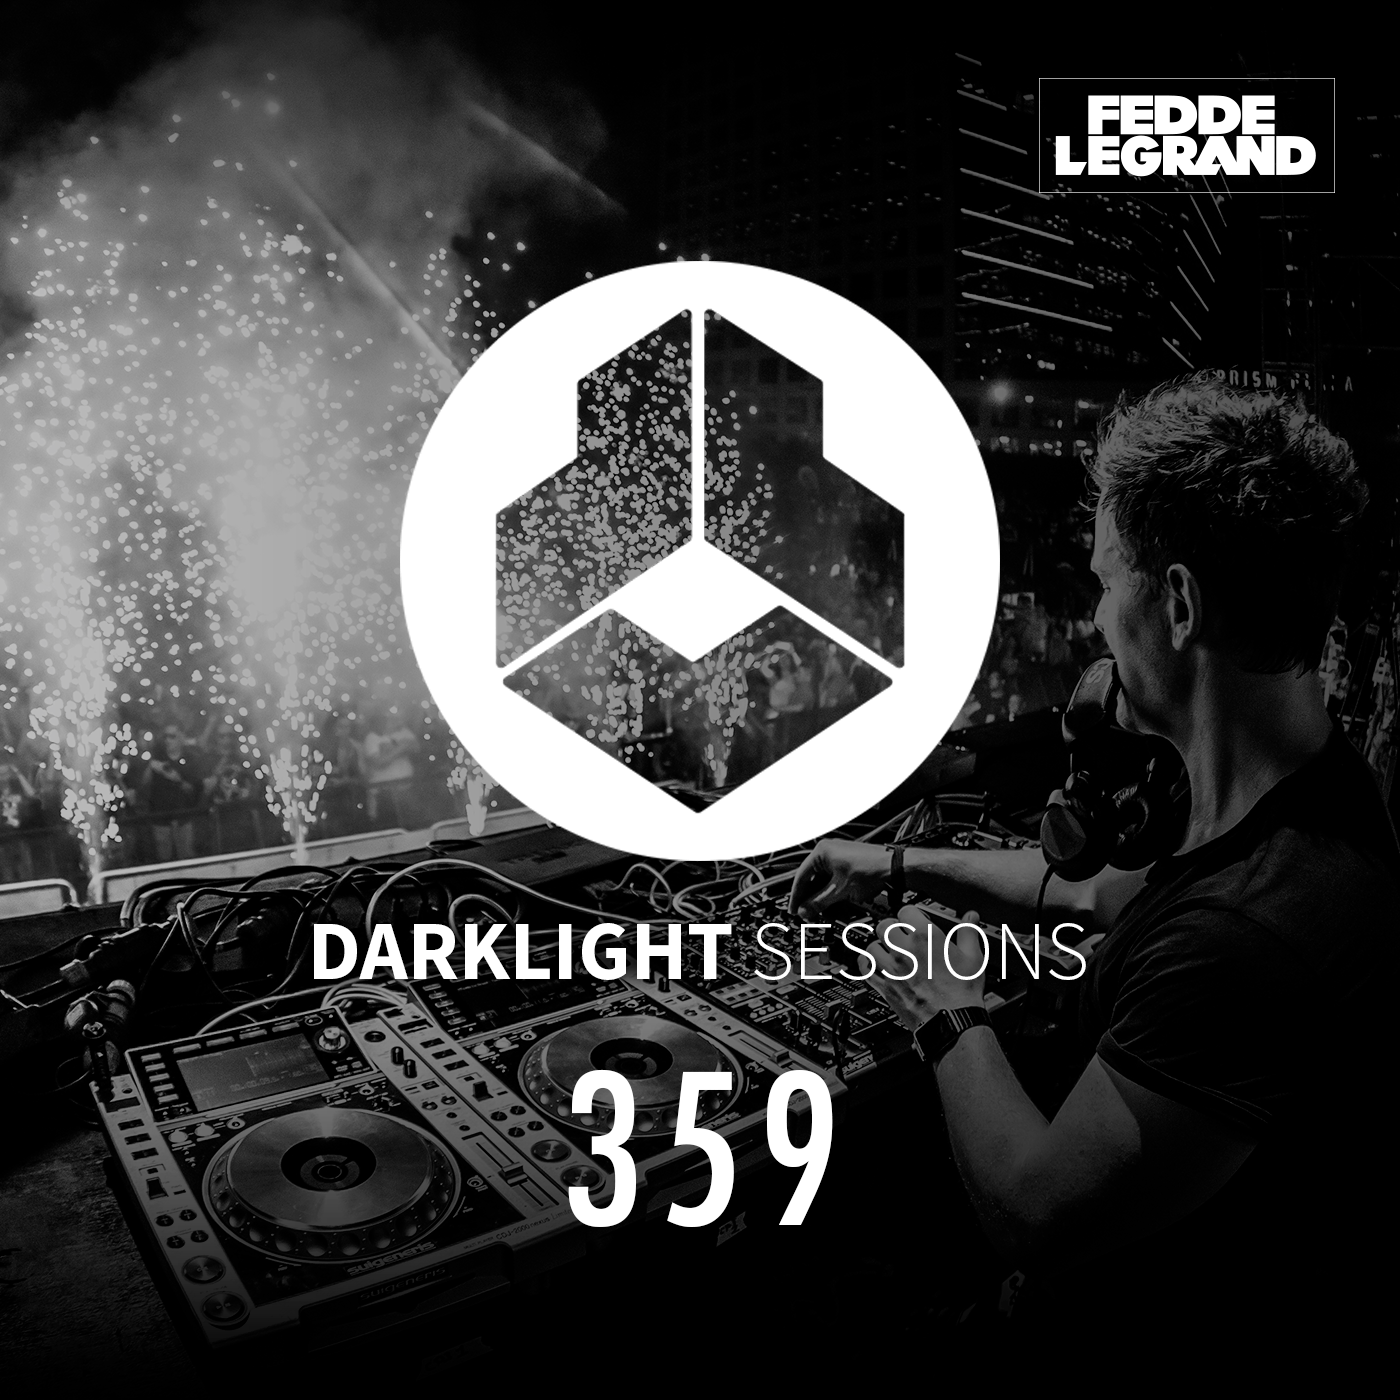 Darklight Sessions 359